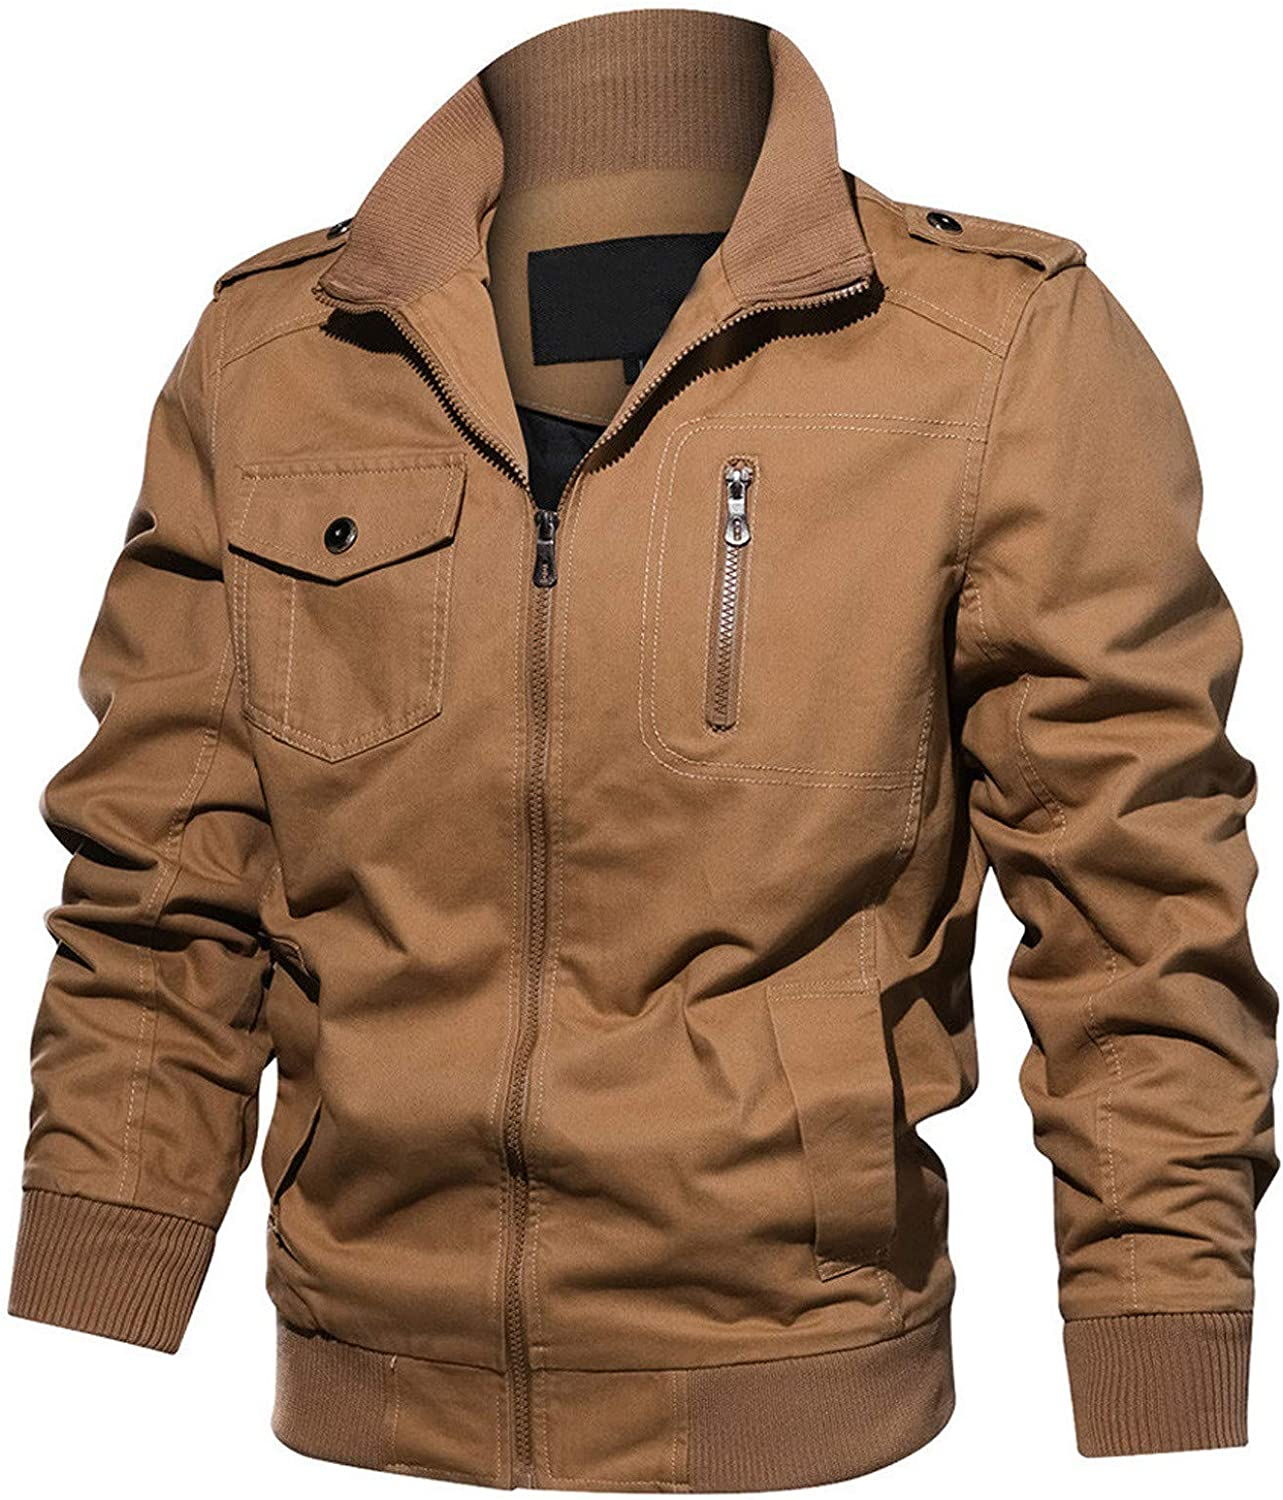 Men's Lightweight Cotton Military Classic Jackets Spring and Autumn Casual Outerwear with Pockets Vintage Coat